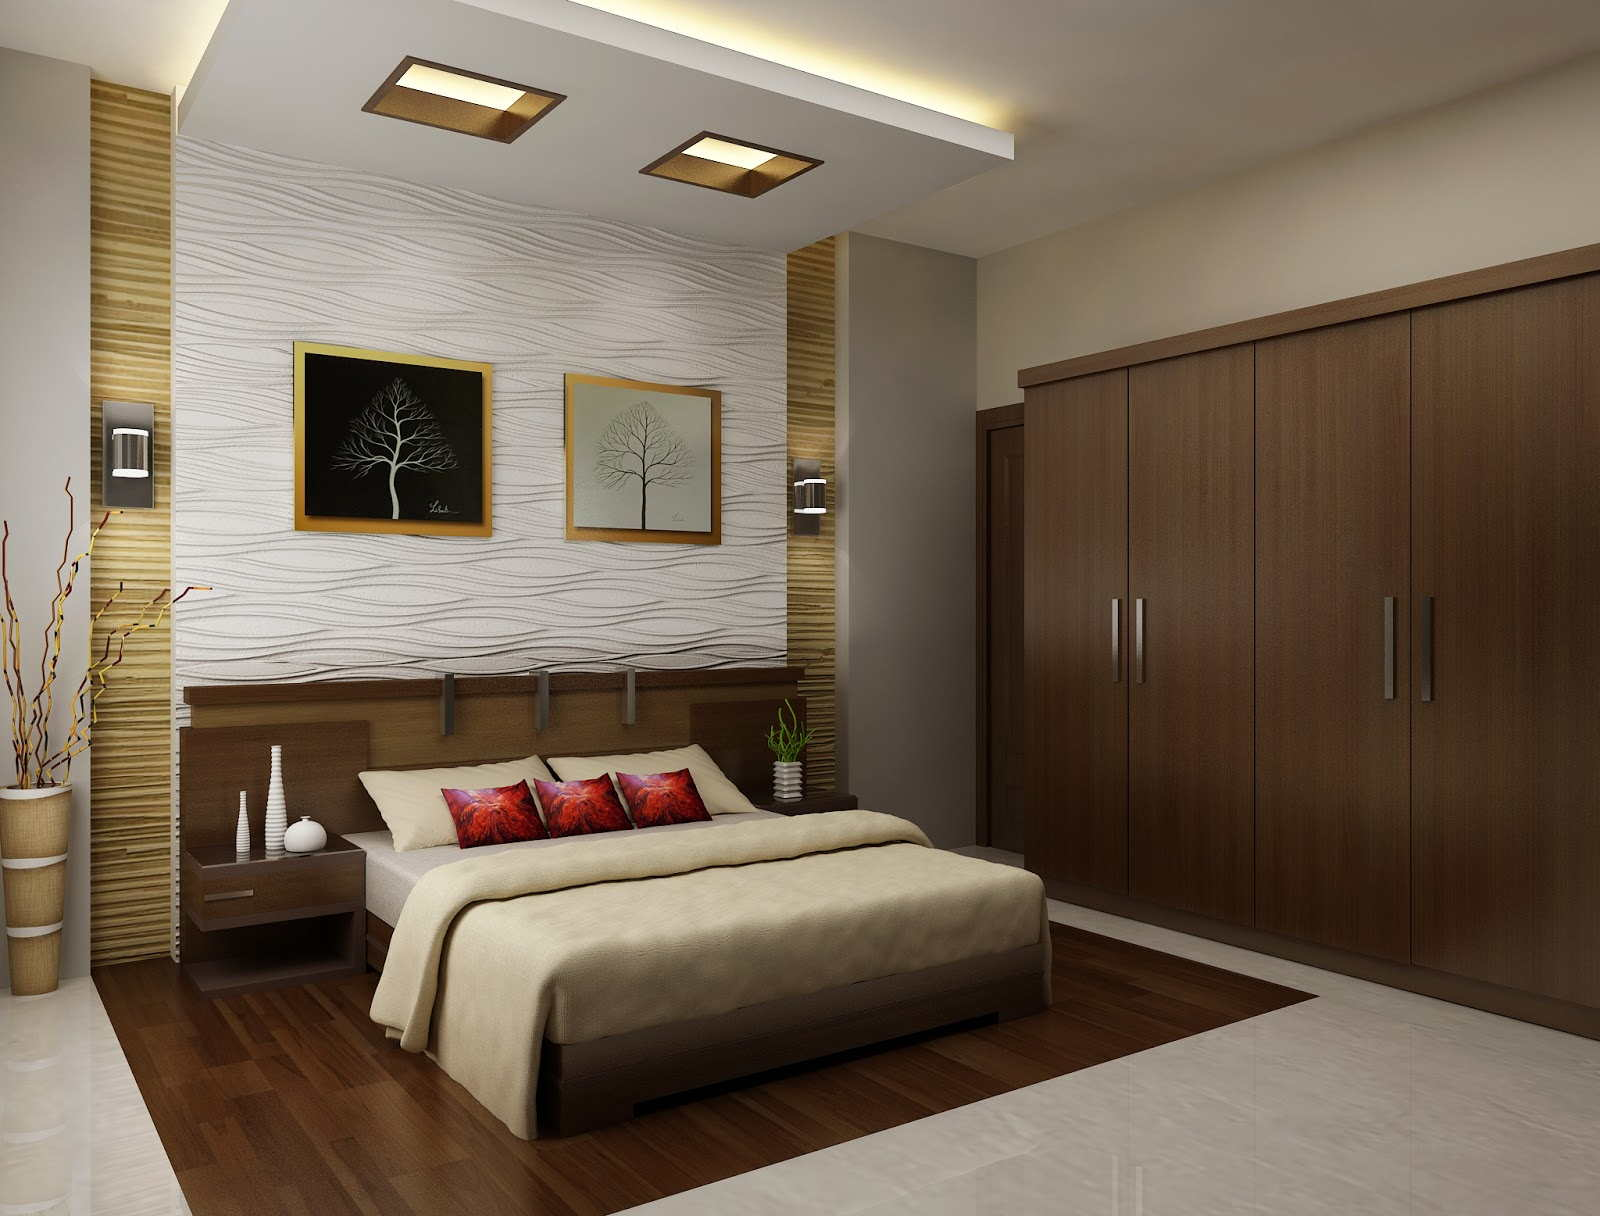 Bedroom Design: 11 Attractive Bedroom Design Ideas That Will Make Your